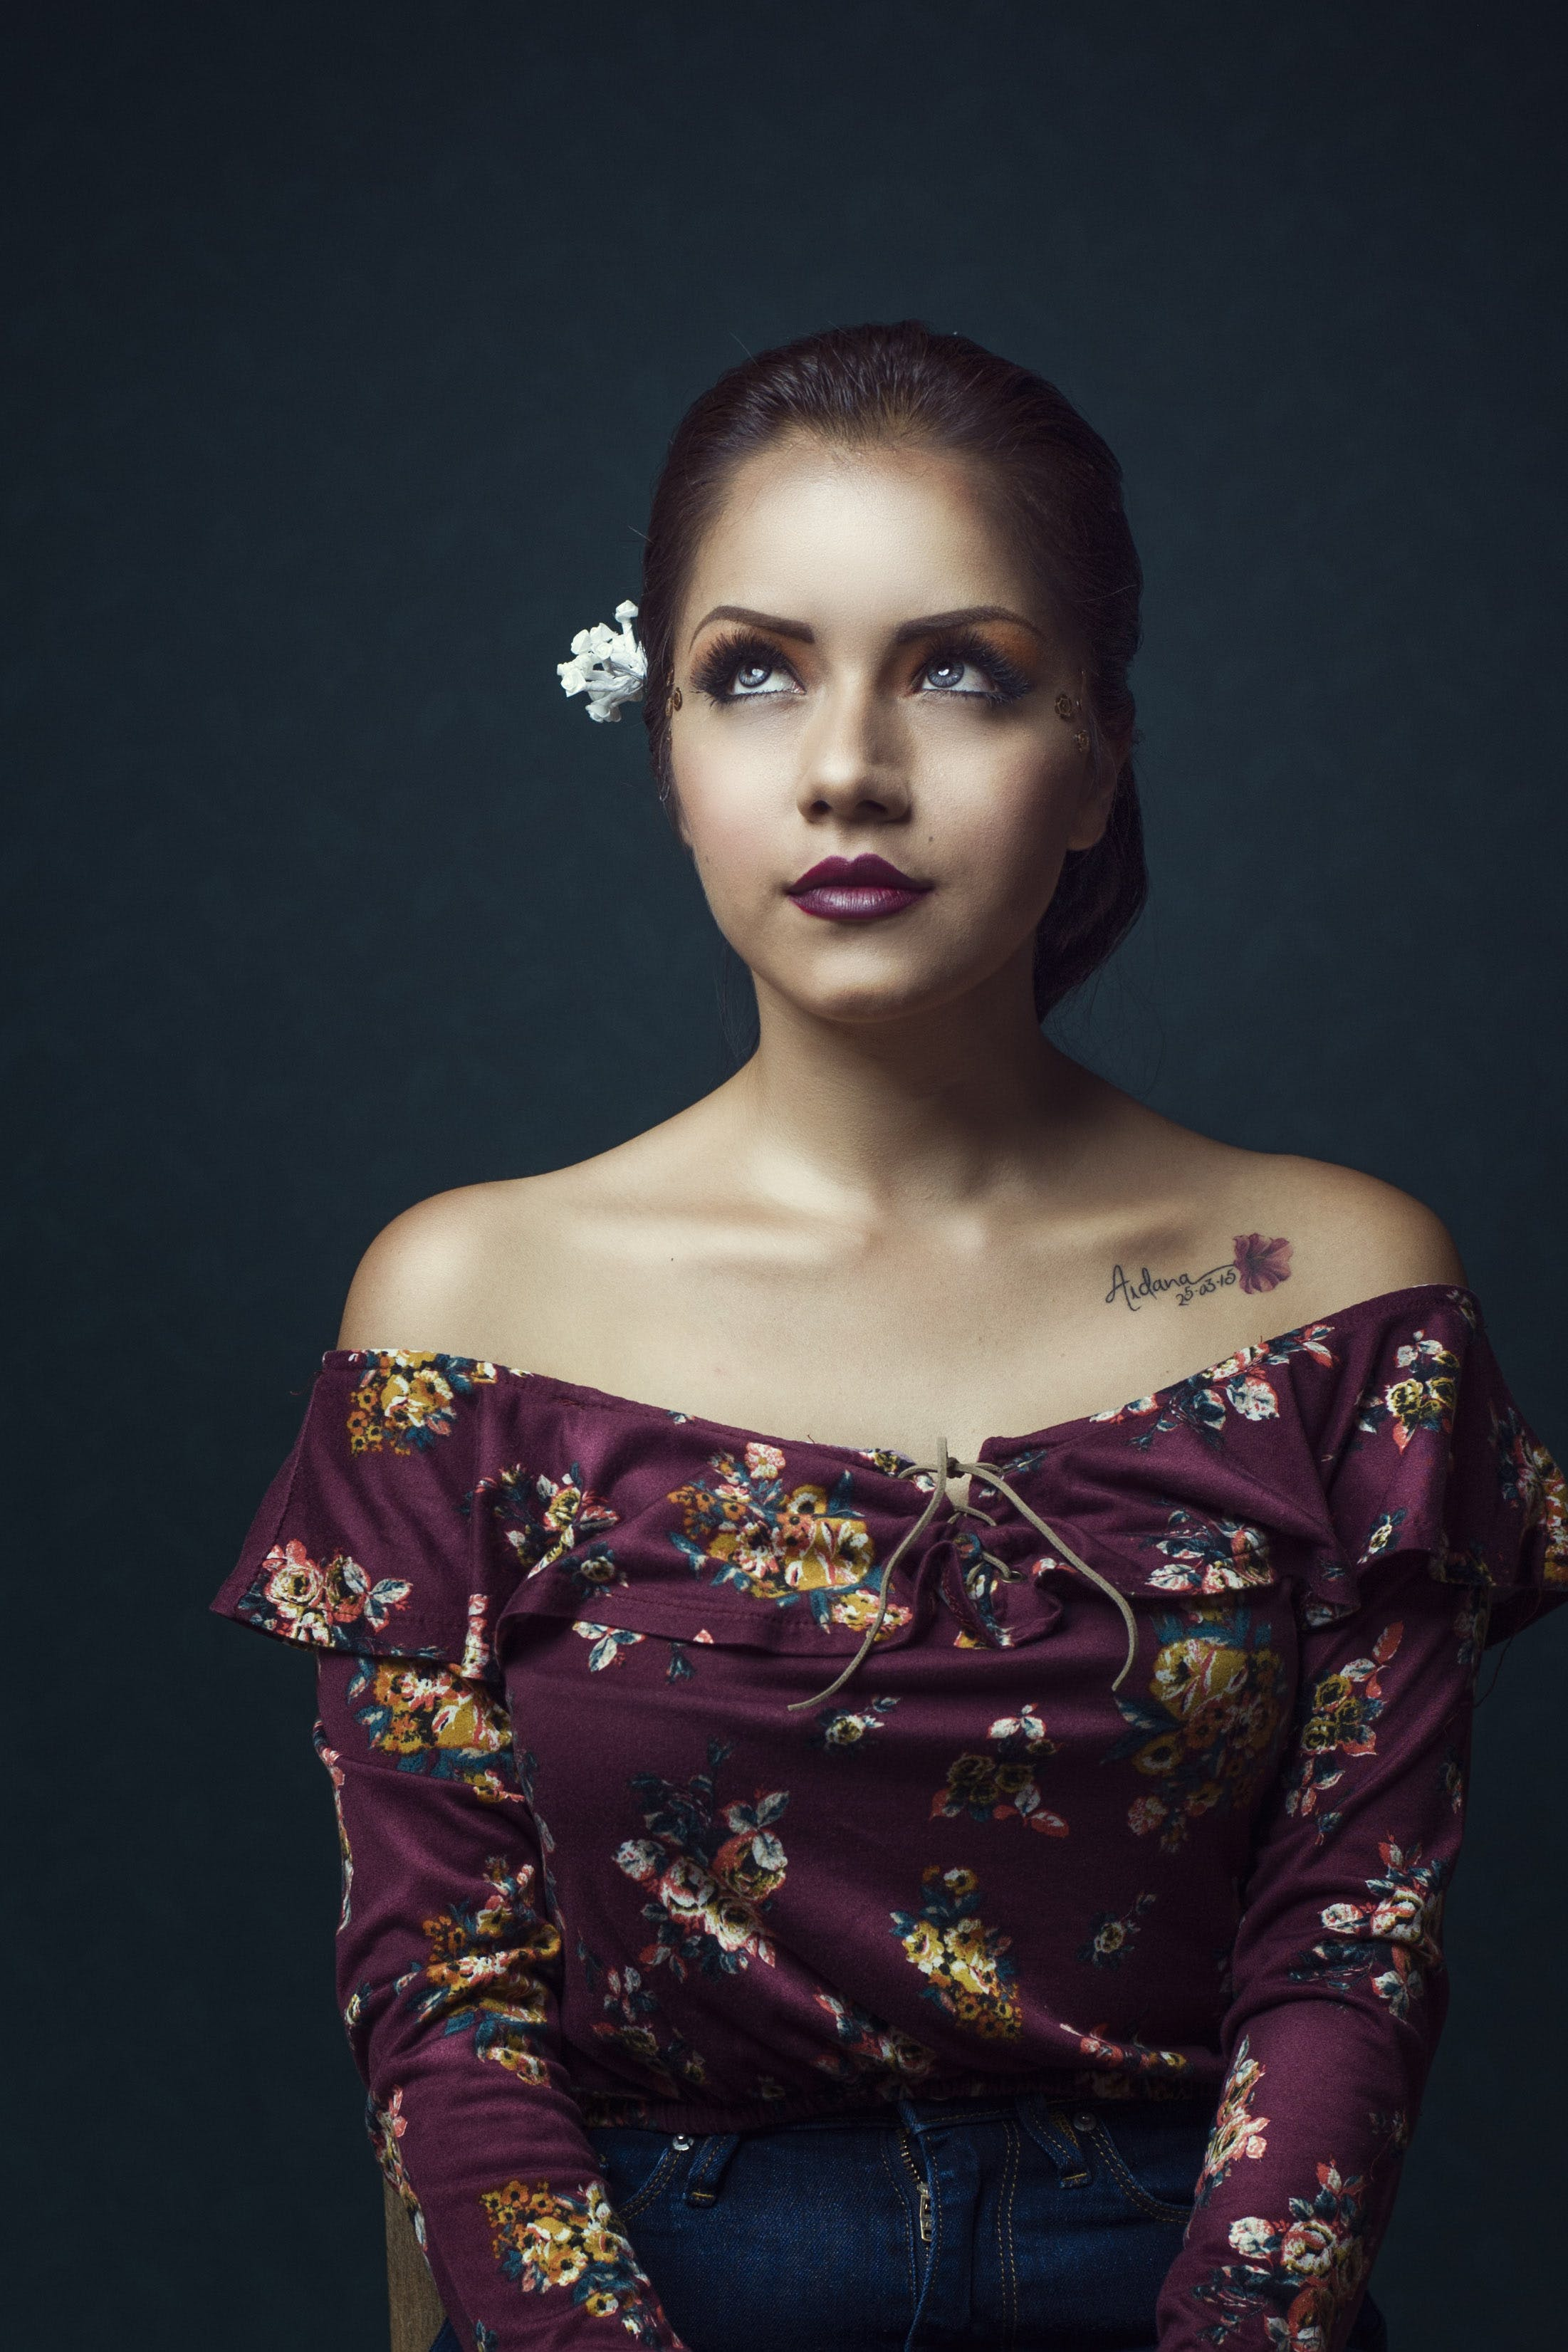 Woman Wearing Purple Floral Off-shoulder Shirt